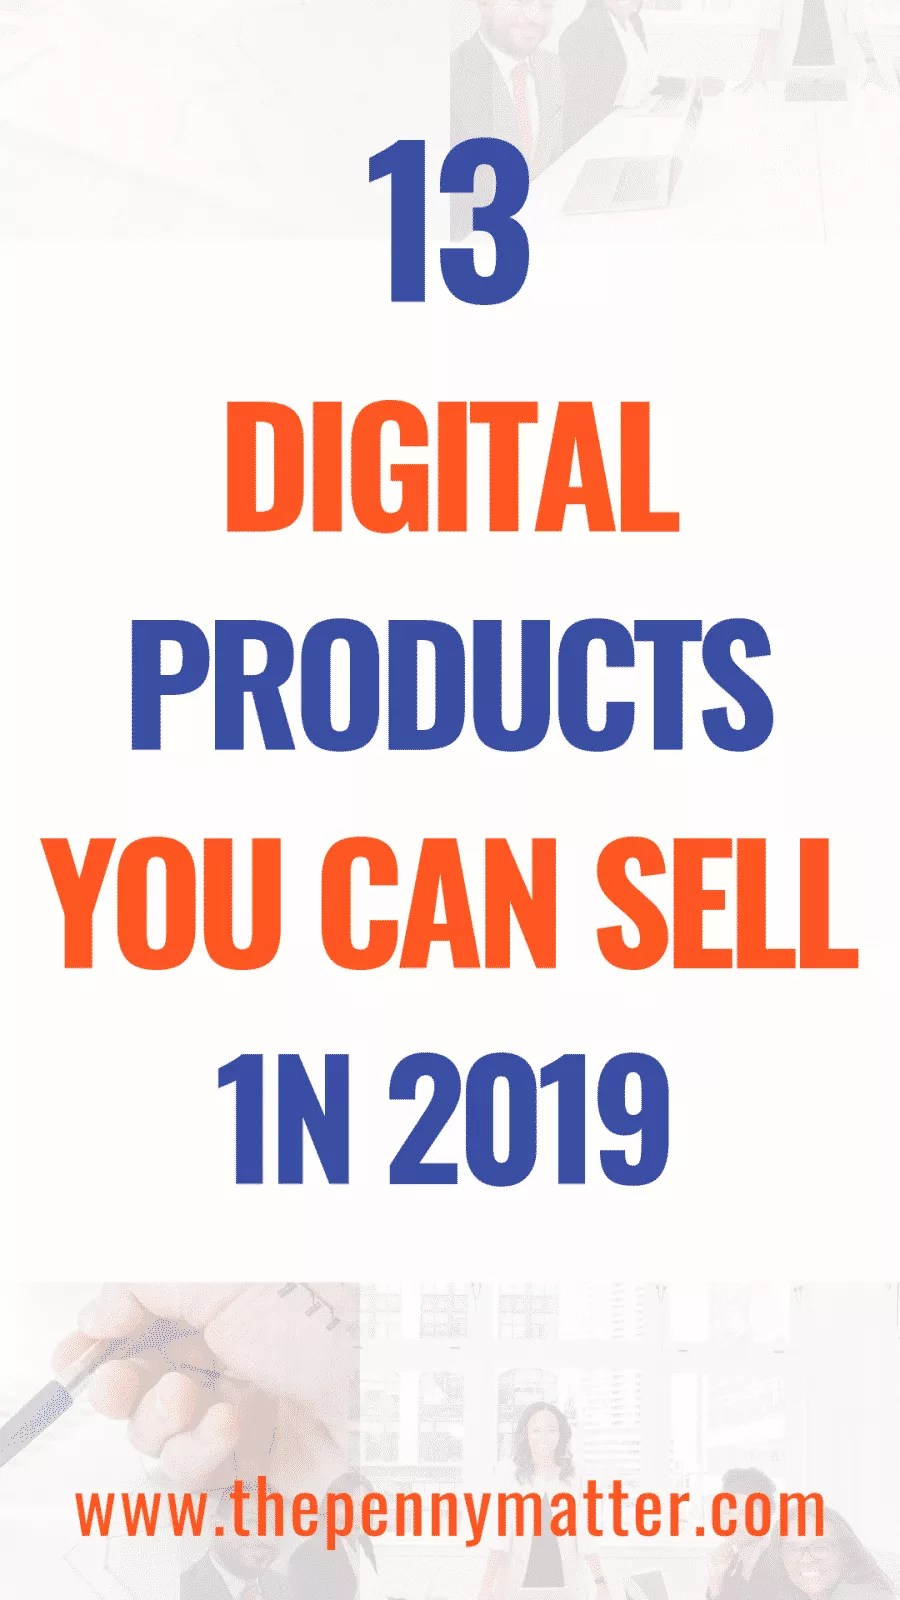 13 Types of Digital Products You Can Sell Online in 2020